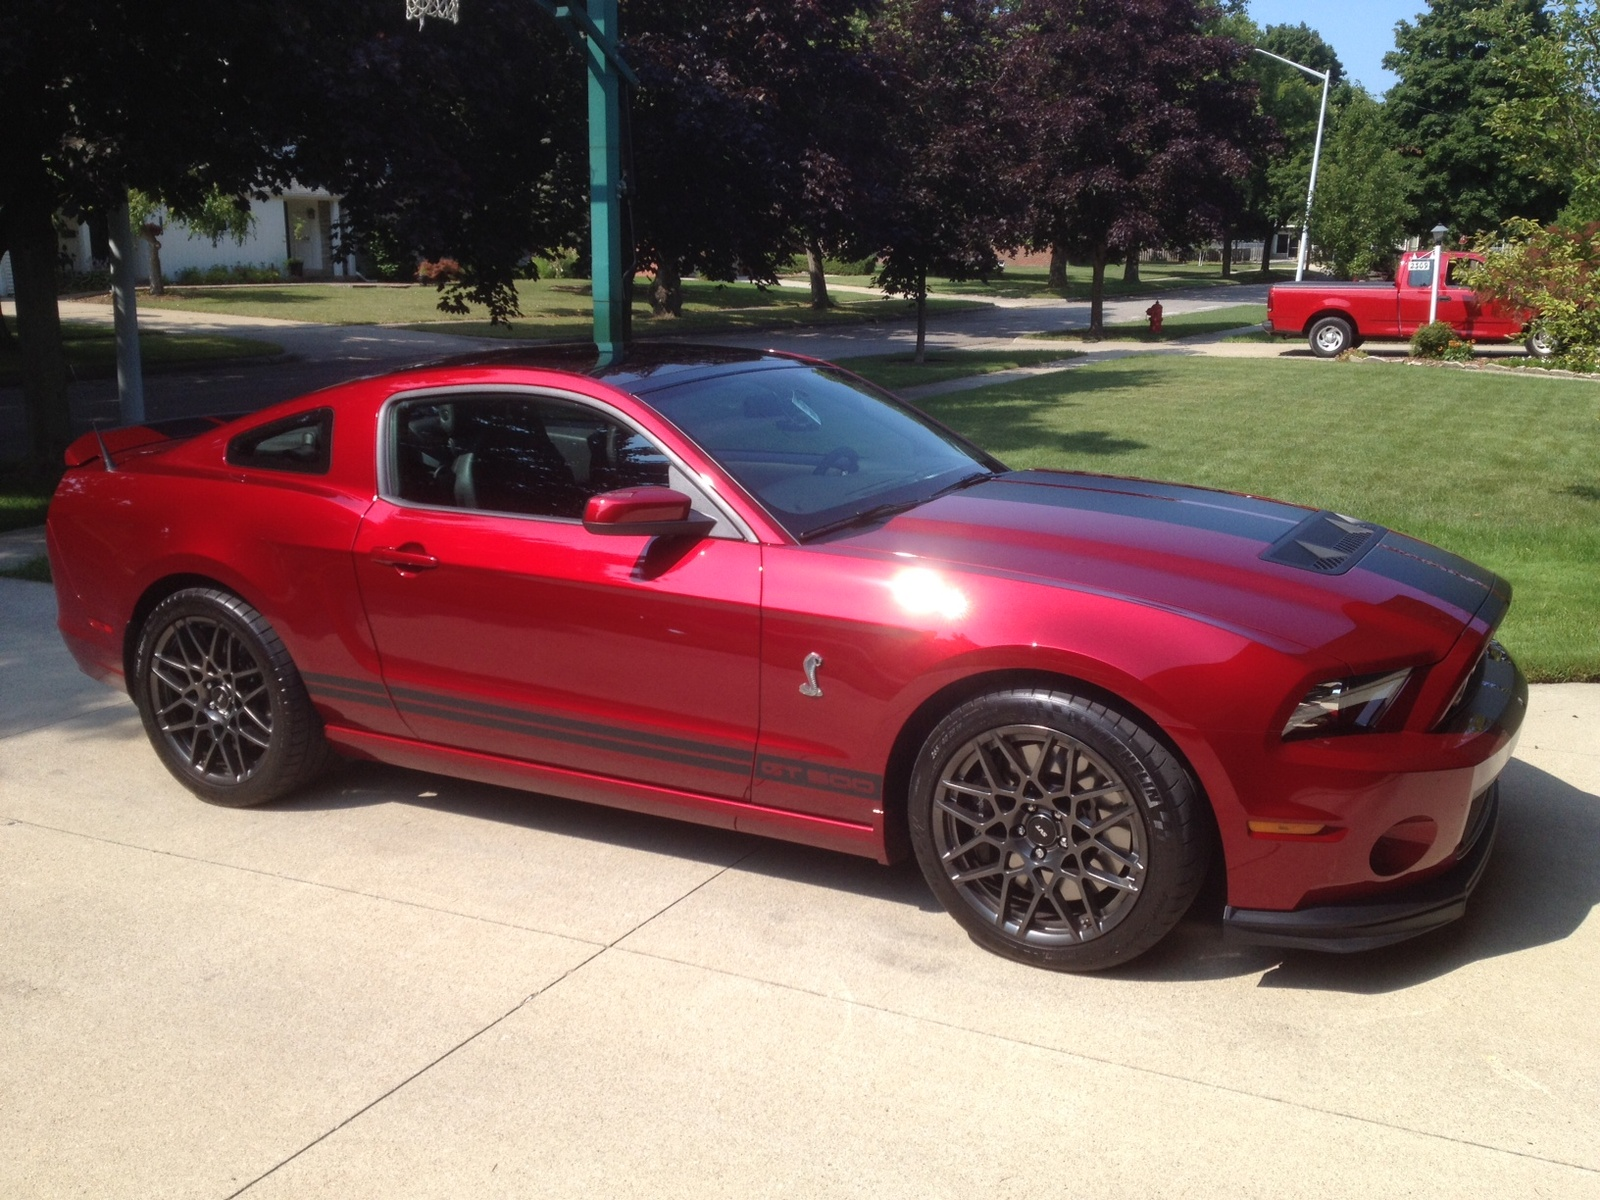 ford mustang shelby gt500 price in pakistan. Black Bedroom Furniture Sets. Home Design Ideas